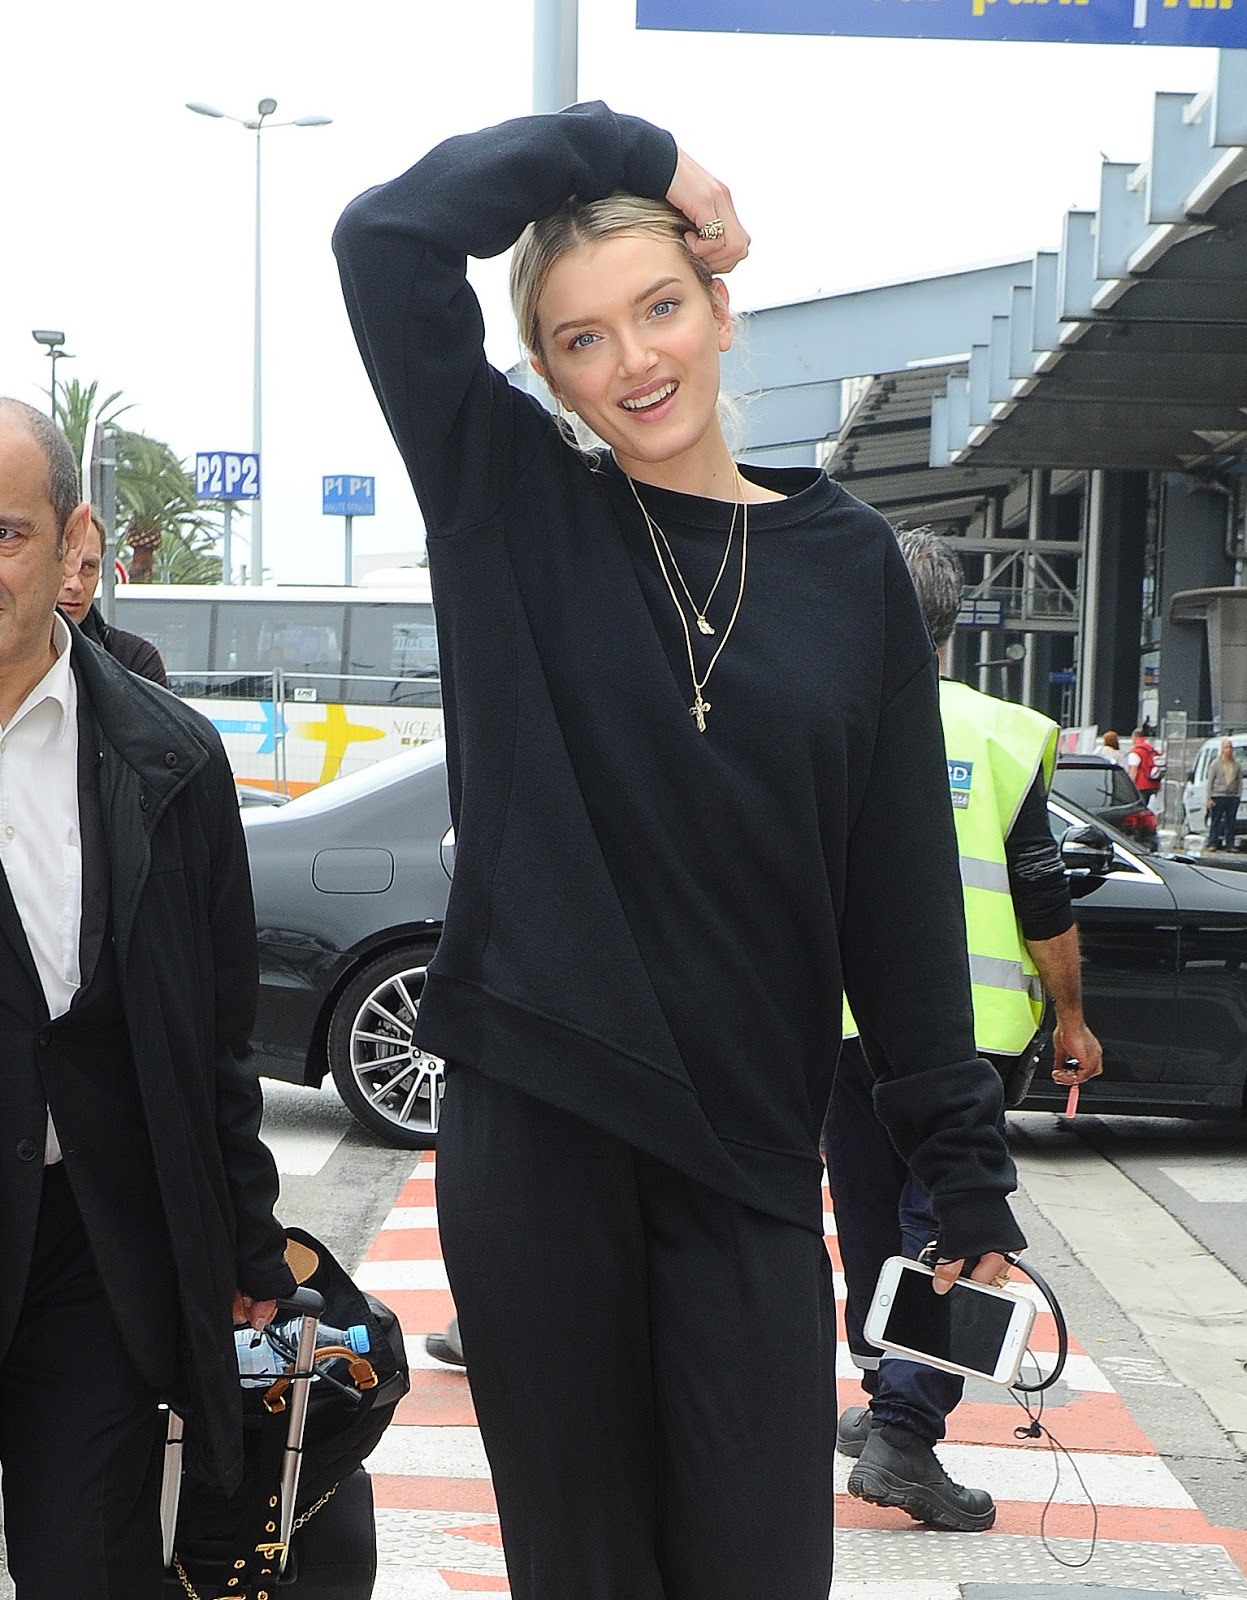 Lily Donaldson Wears All Black as She Arrives for Cannes Film Festival